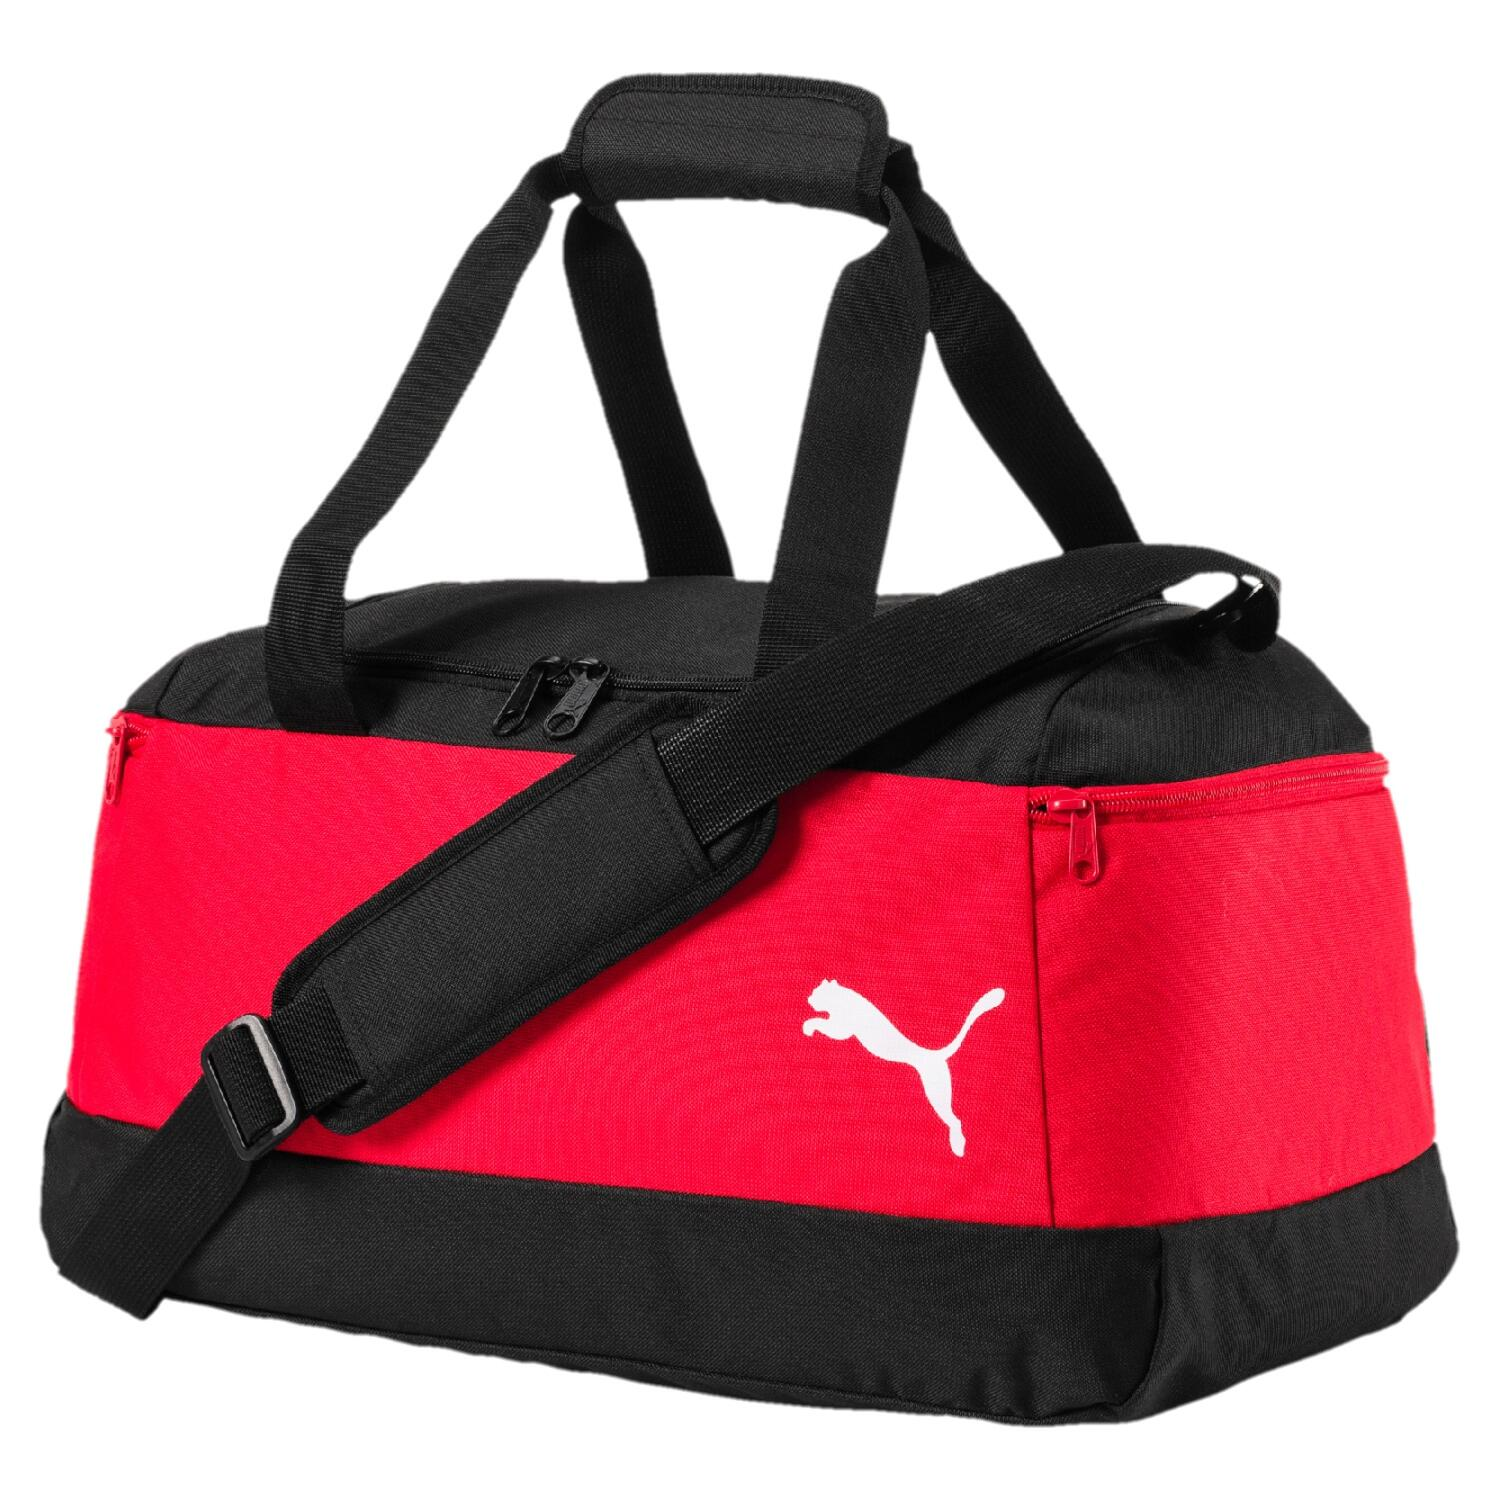 puma-teambag-pro-training-ii-s-sporttasche-farbe-0002-red-black-